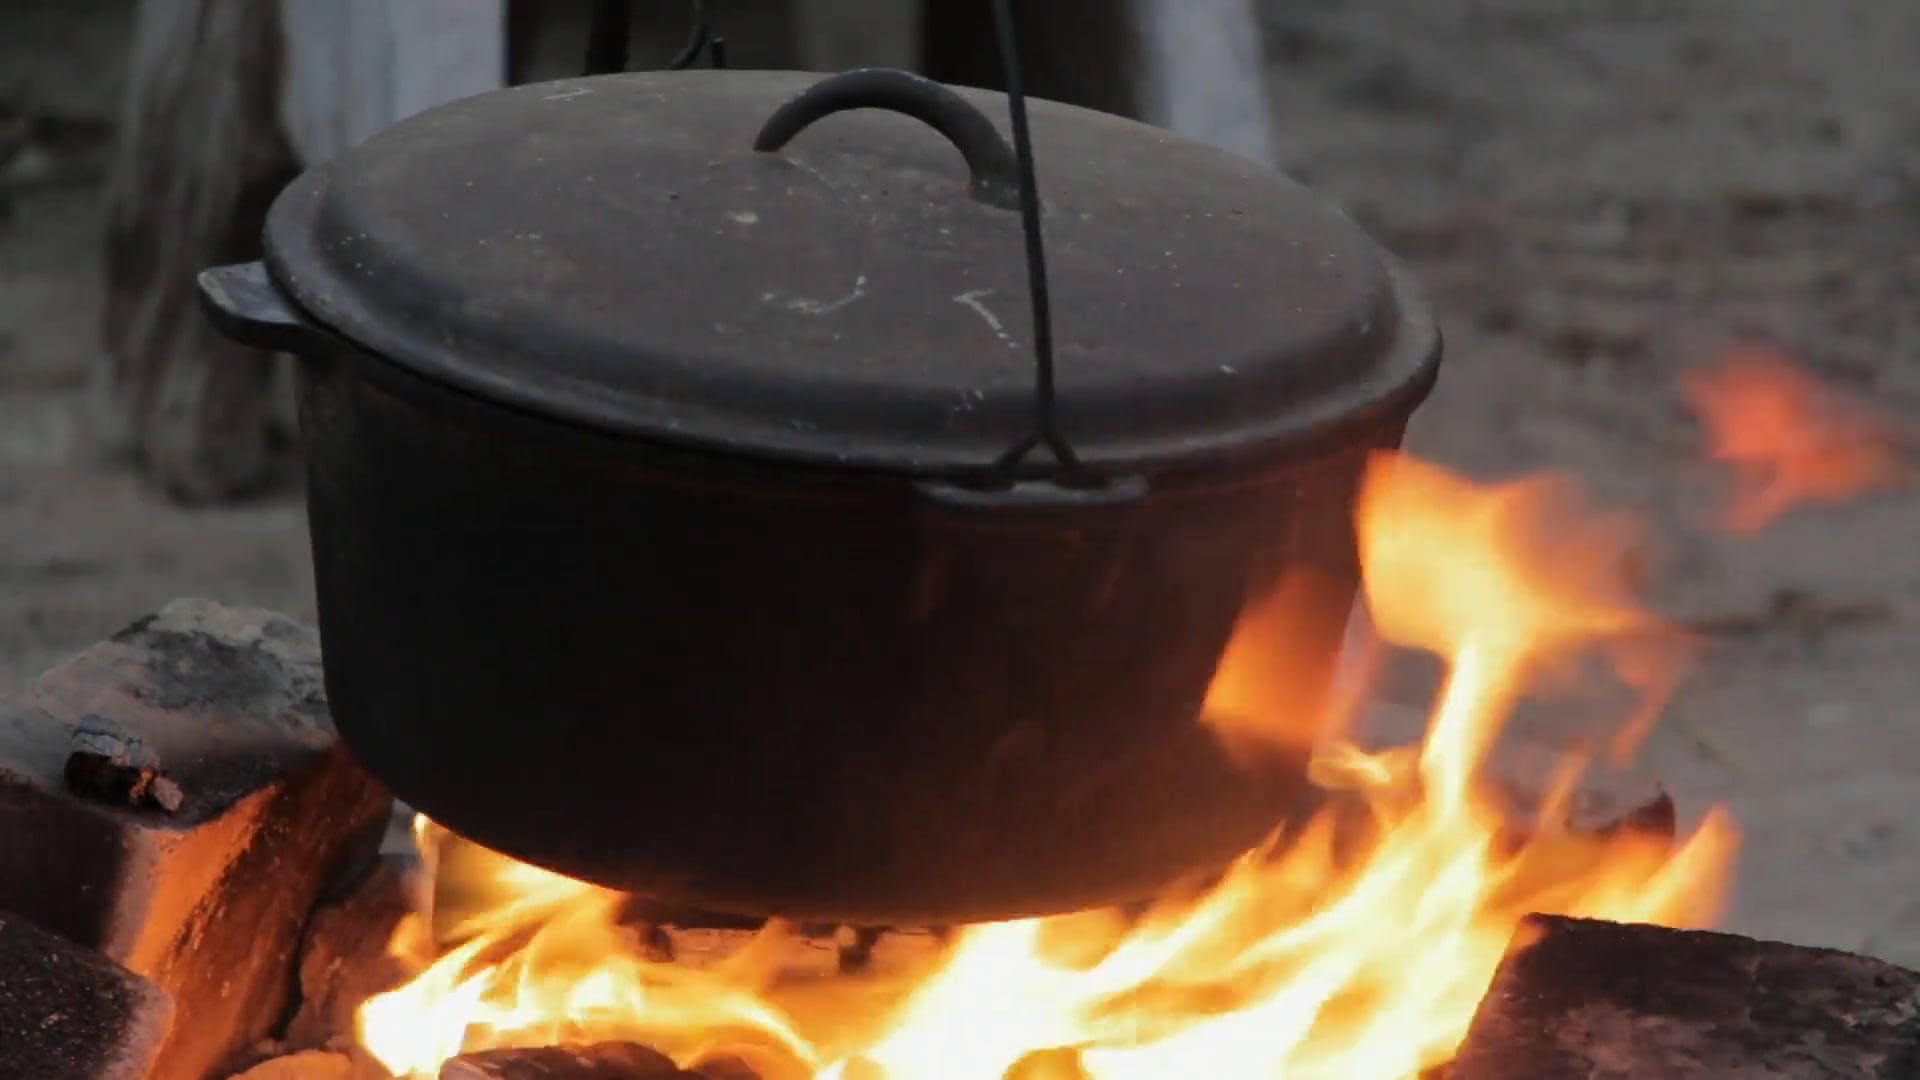 Black Pot On Fire